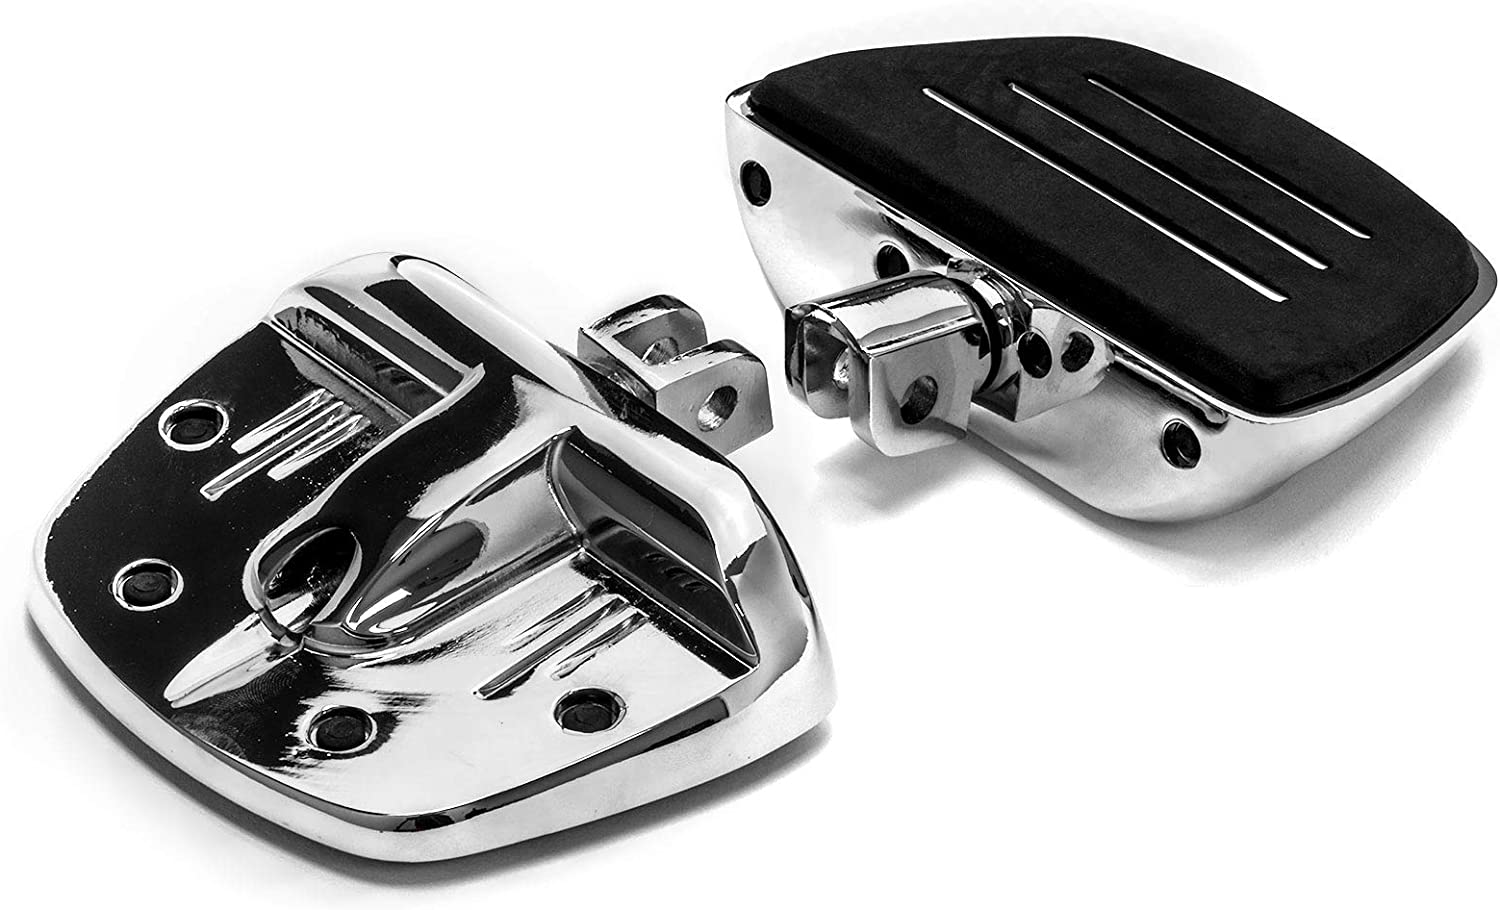 Krator Chrome Mini Board Floorboards Footpegs for Can-Am Spyder RS Models 2008-2016 Front Only